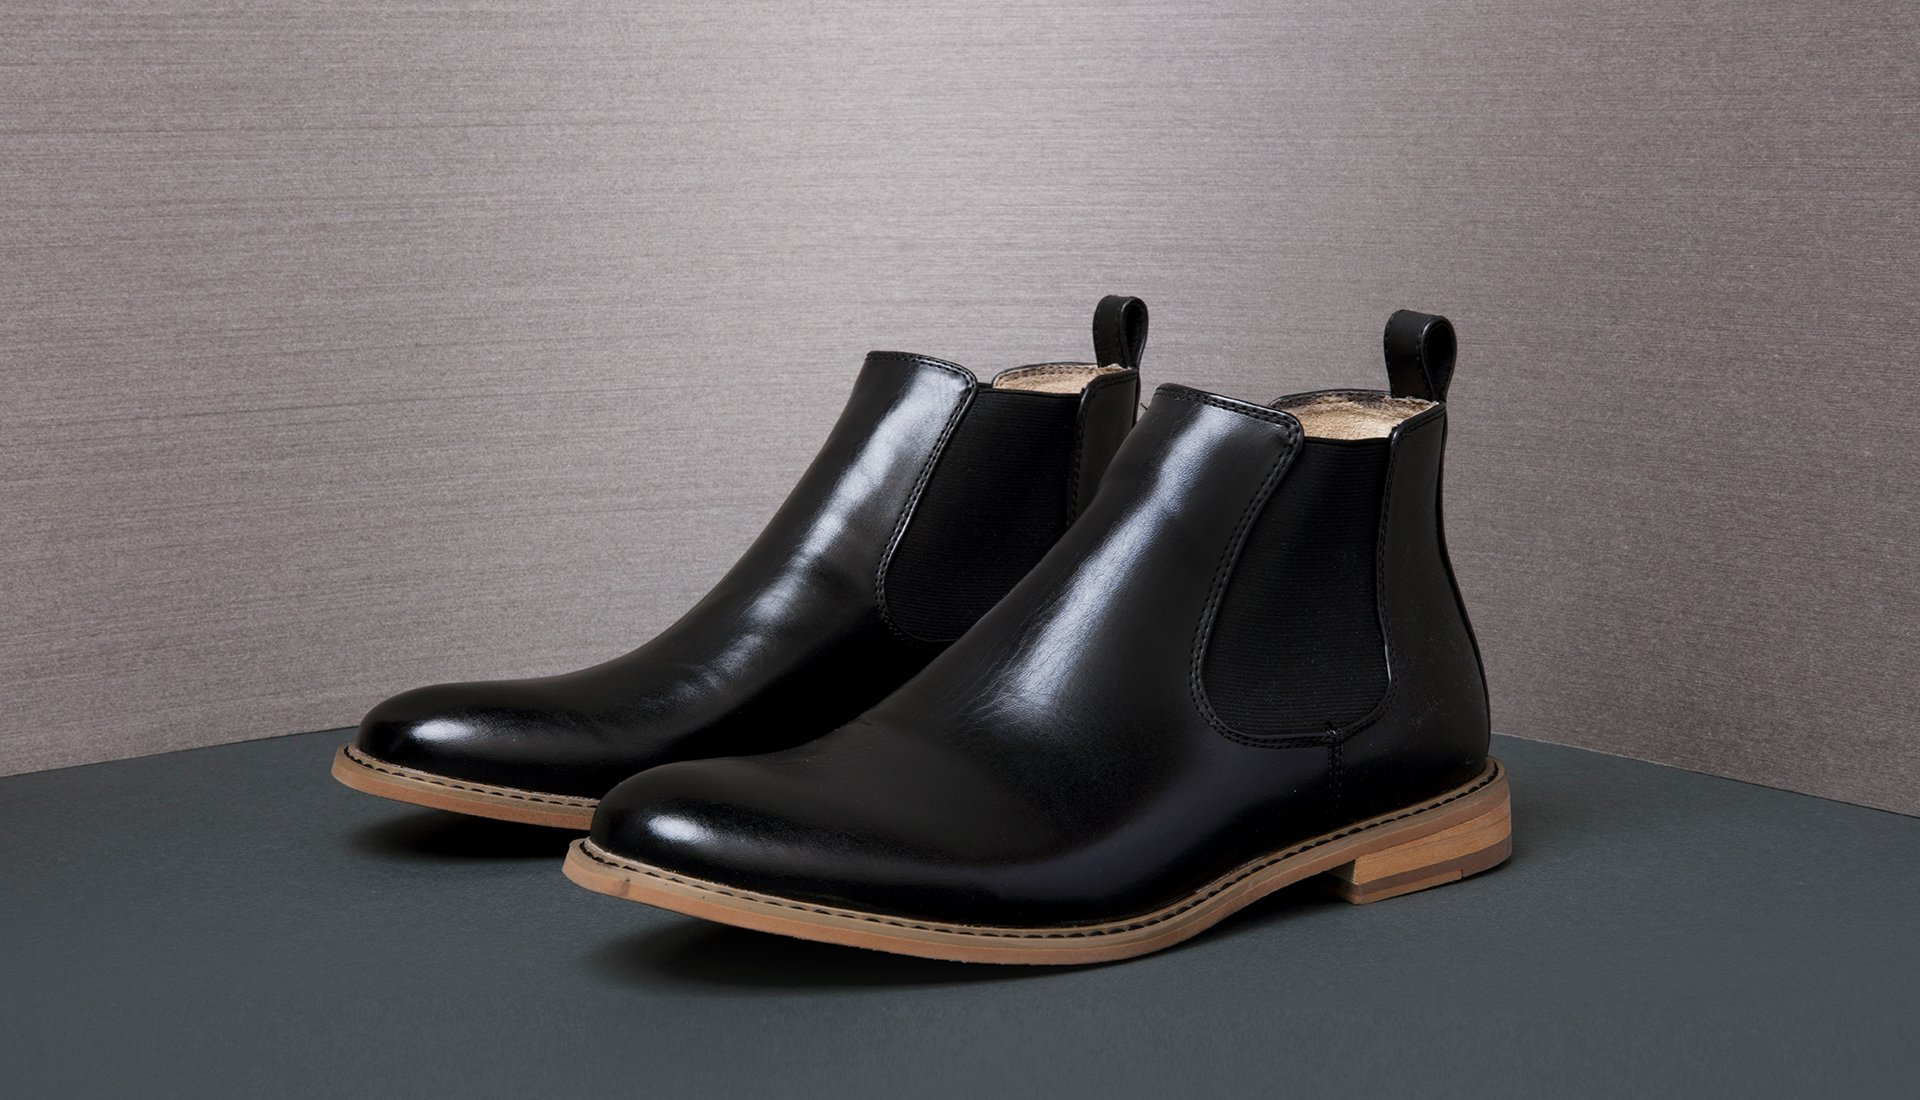 Image of a Men's dress boot